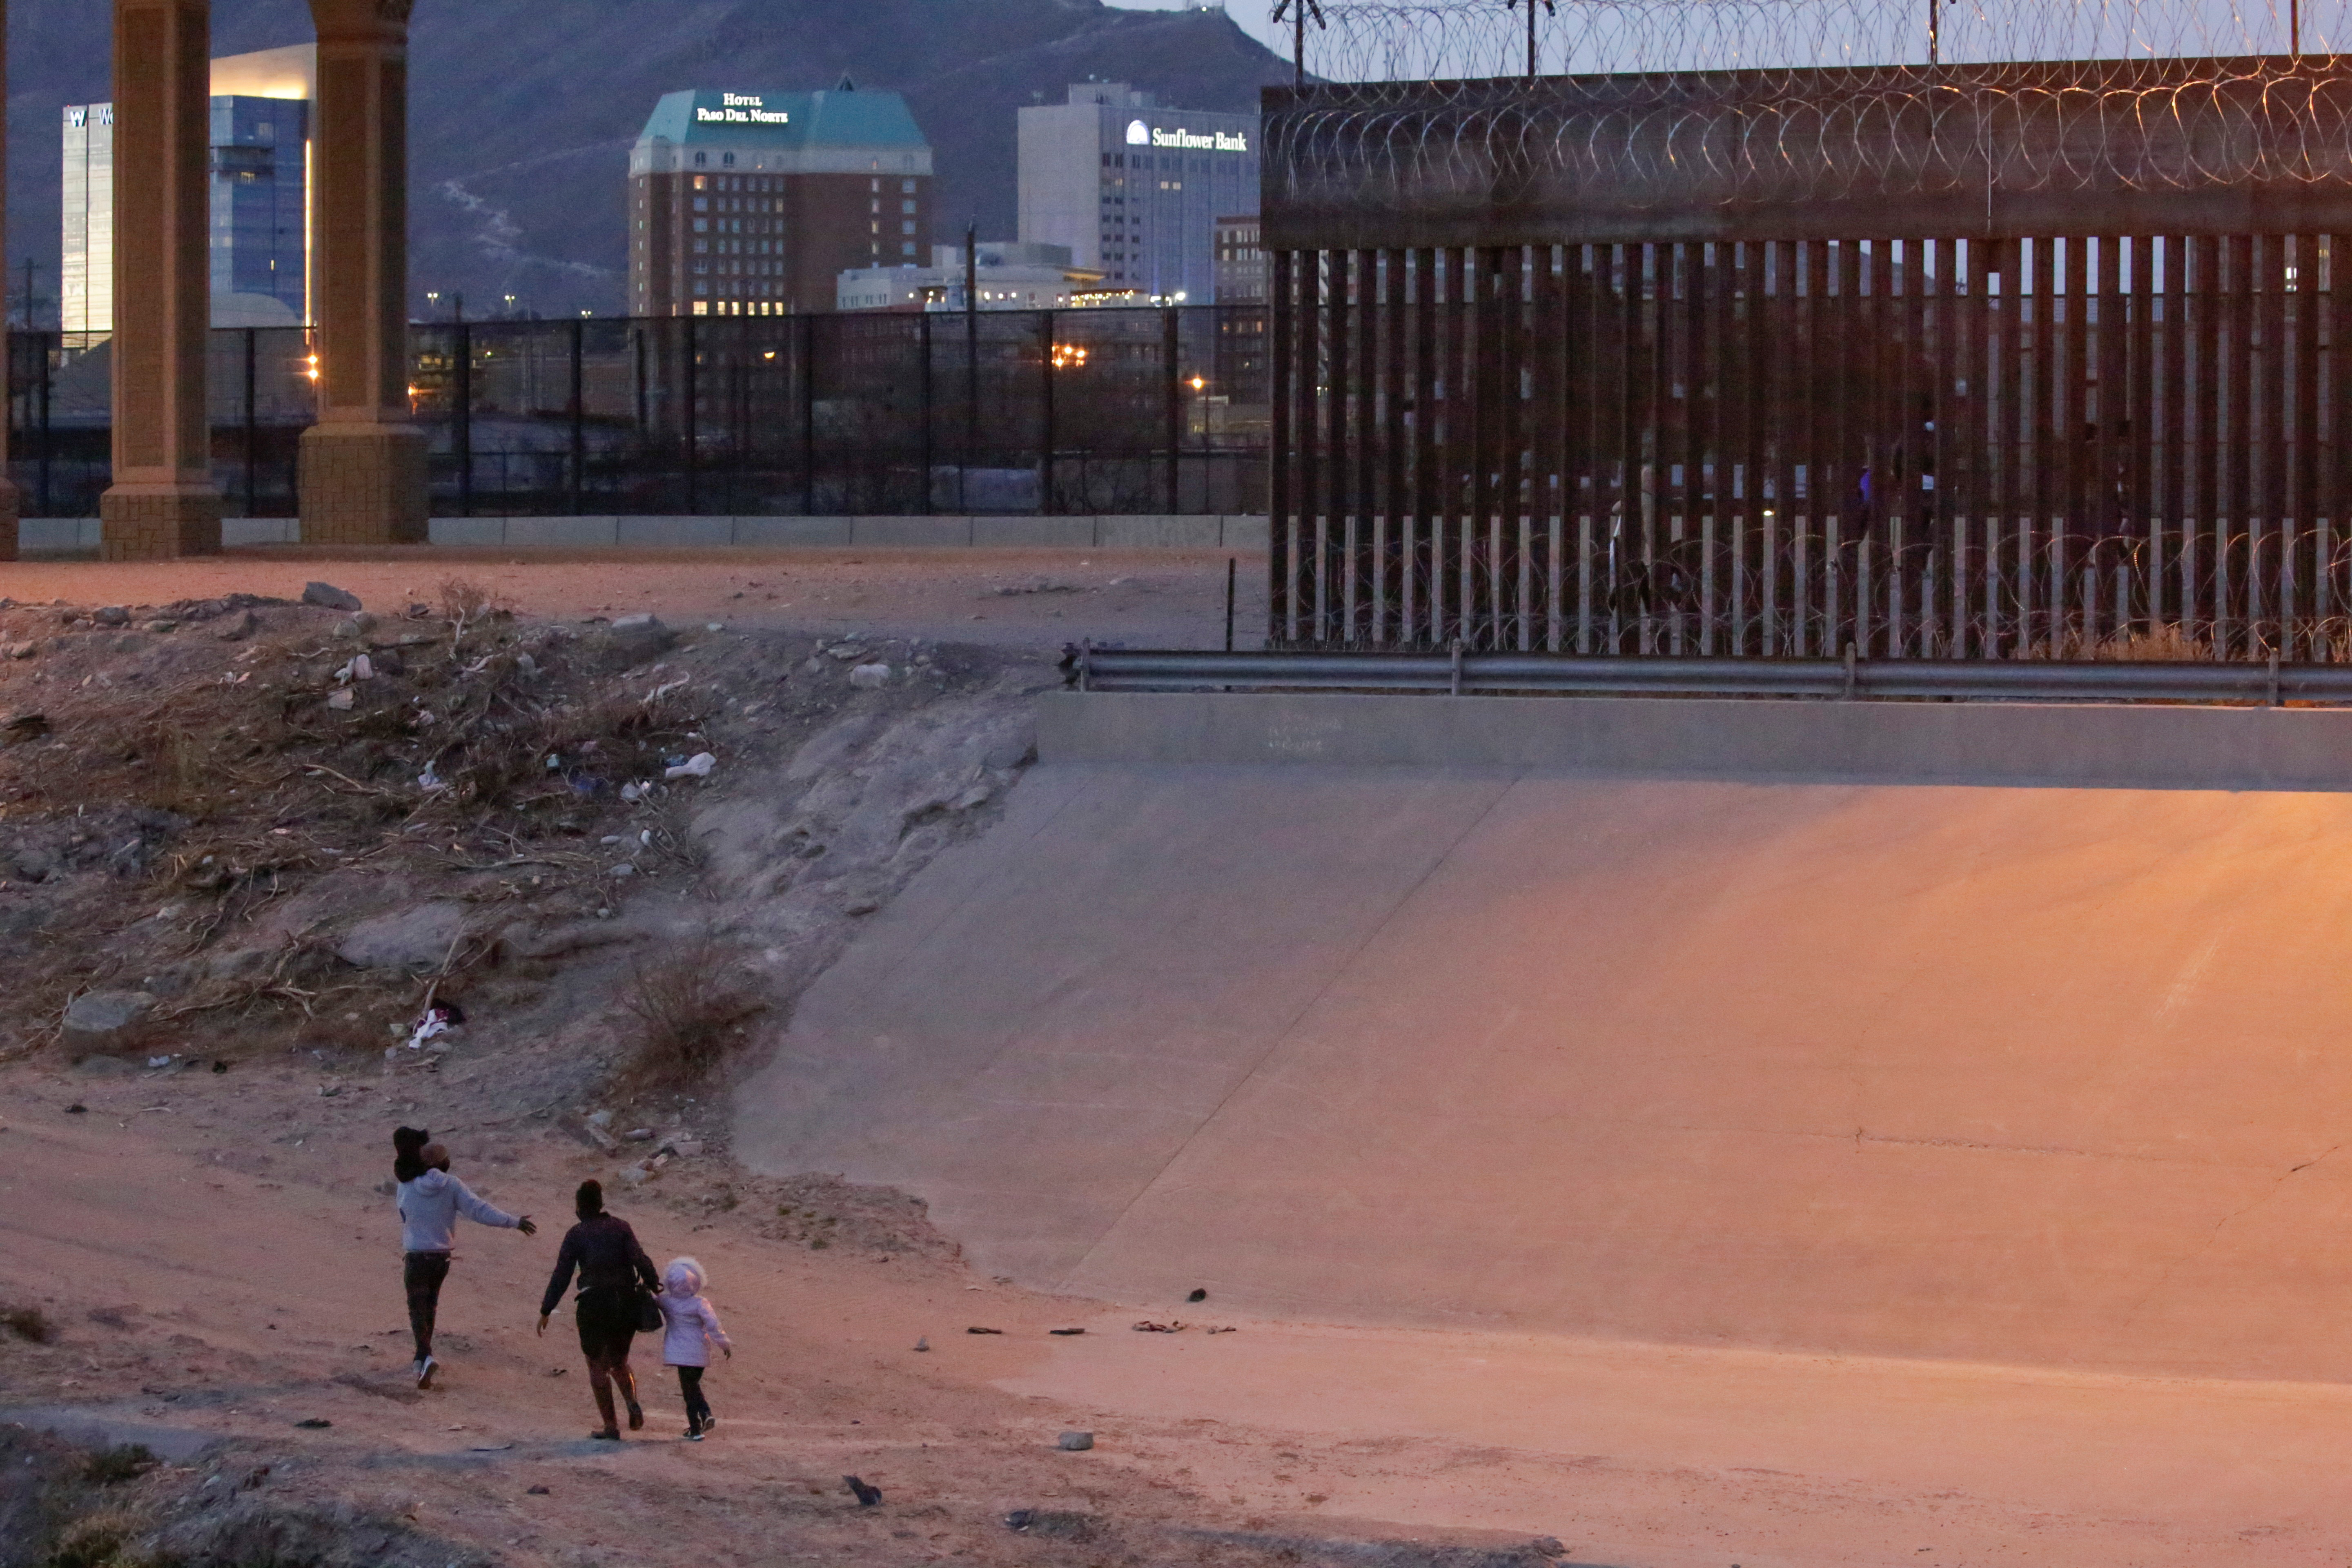 Migrants are seen after crossing the Rio Bravo river to turn themselves in to U.S. Border Patrol agents to request for asylum in El Paso, Texas, U.S., as seen from Ciudad Juarez, Mexico March 4, 2021. REUTERS/Jose Luis Gonzalez